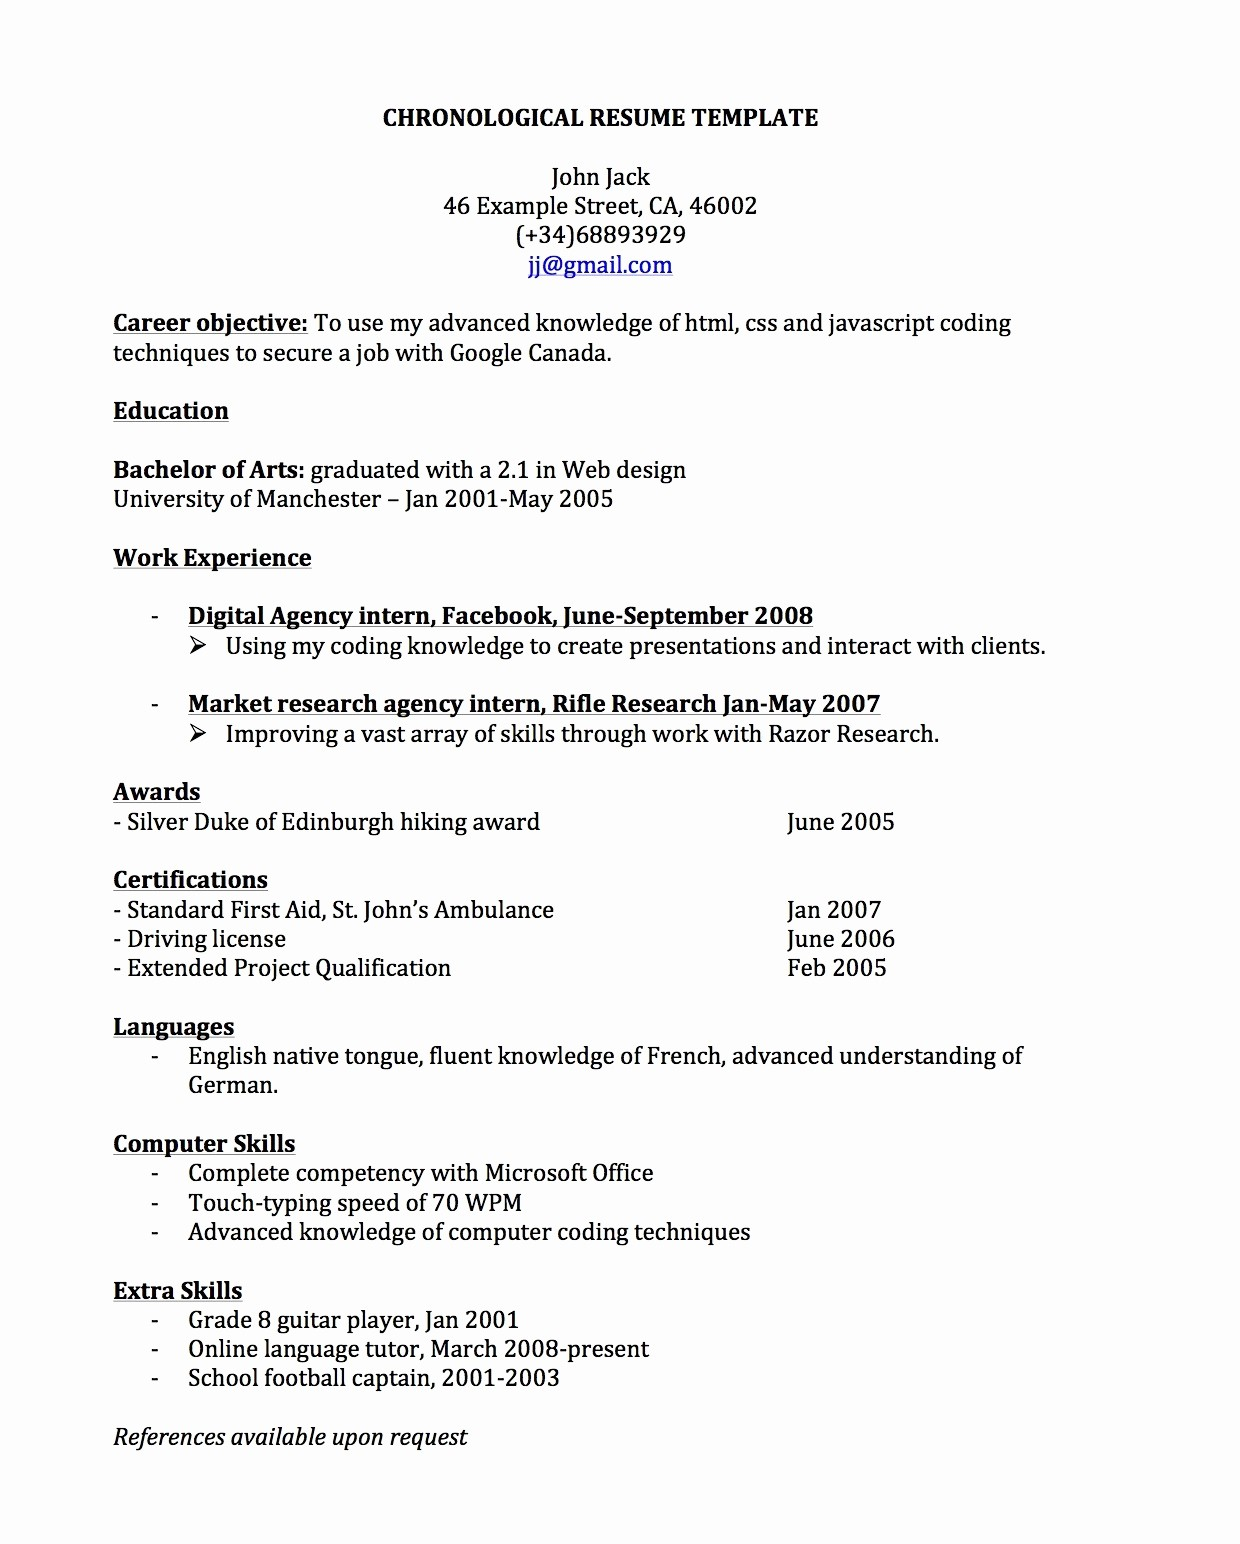 Resume Template for Office Job Awesome Chronological Resume for Canada